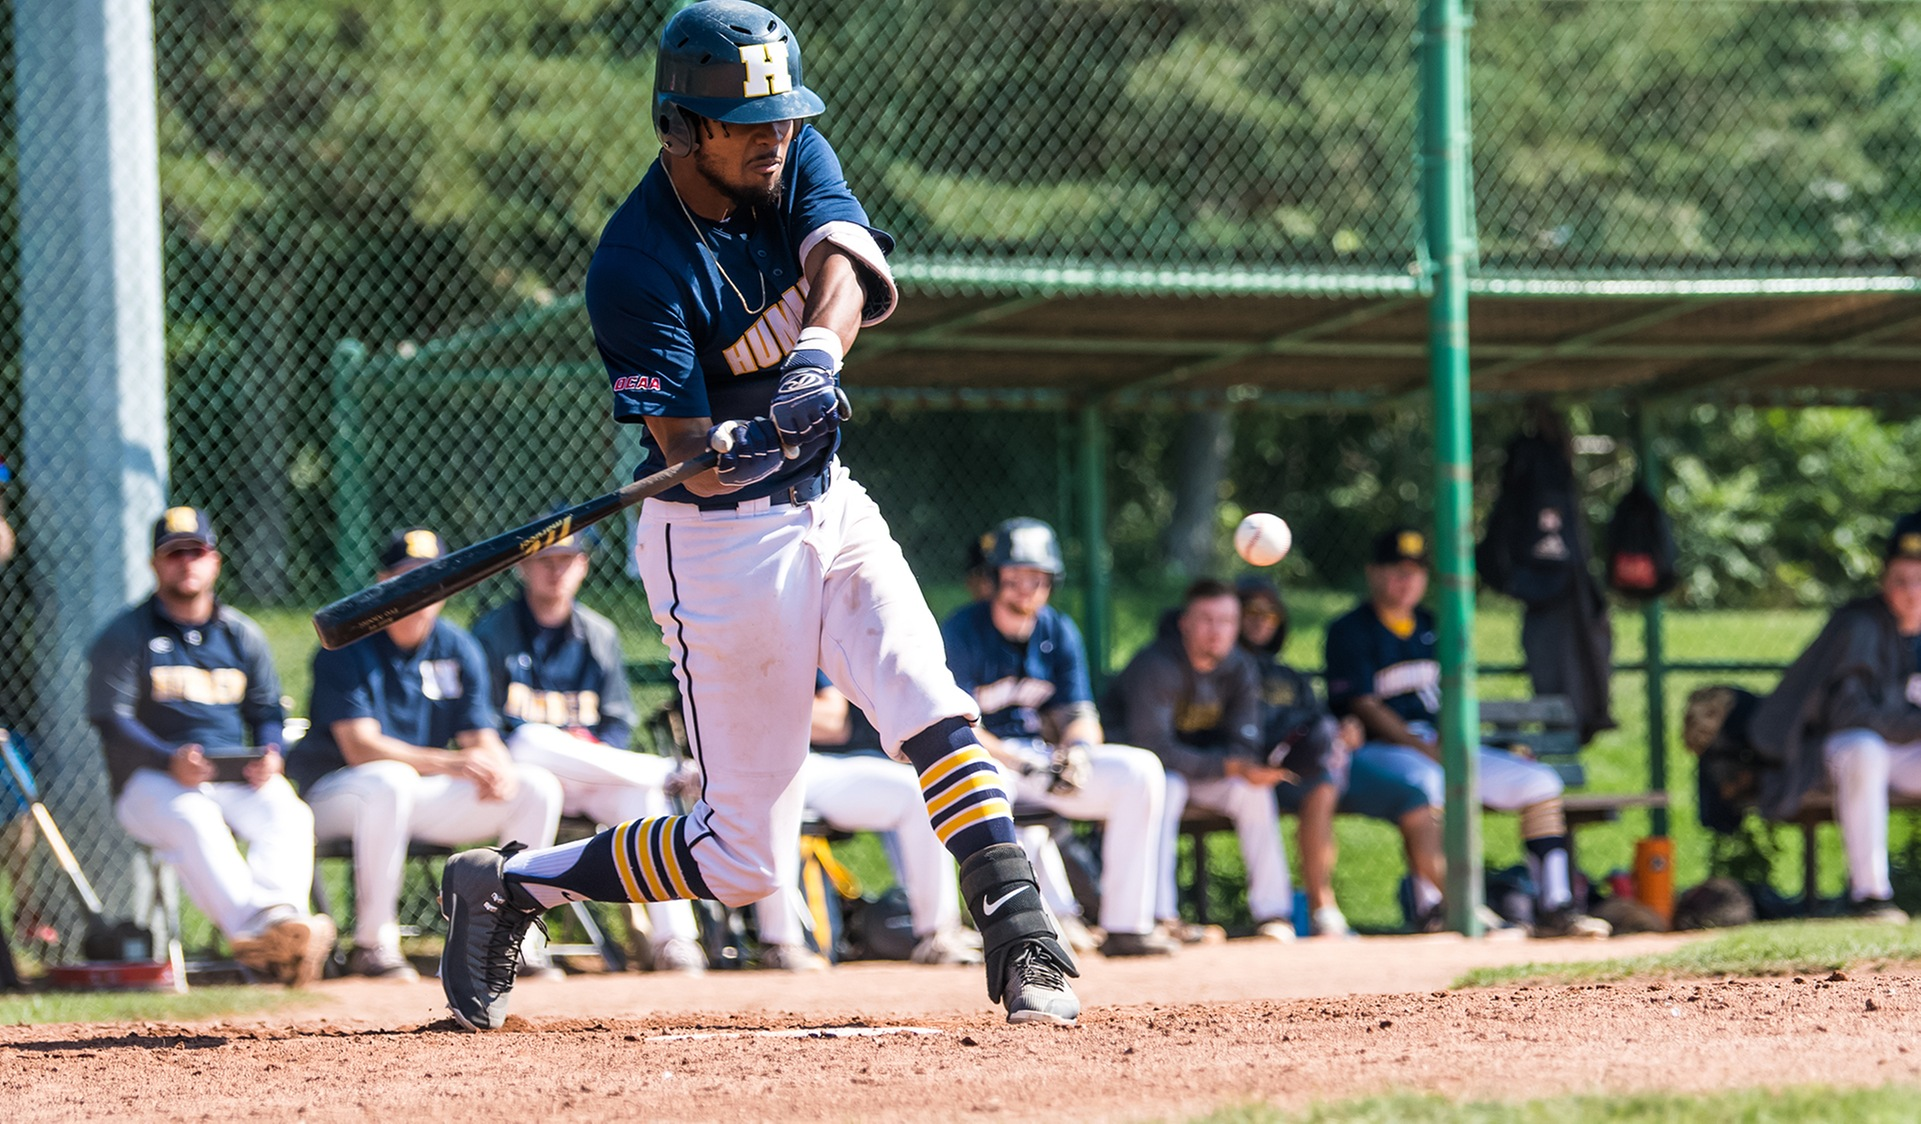 GAME TWO WALK-OFF WIN GIVES HAWKS SWEEP OF FANSHAWE ON SUNDAY